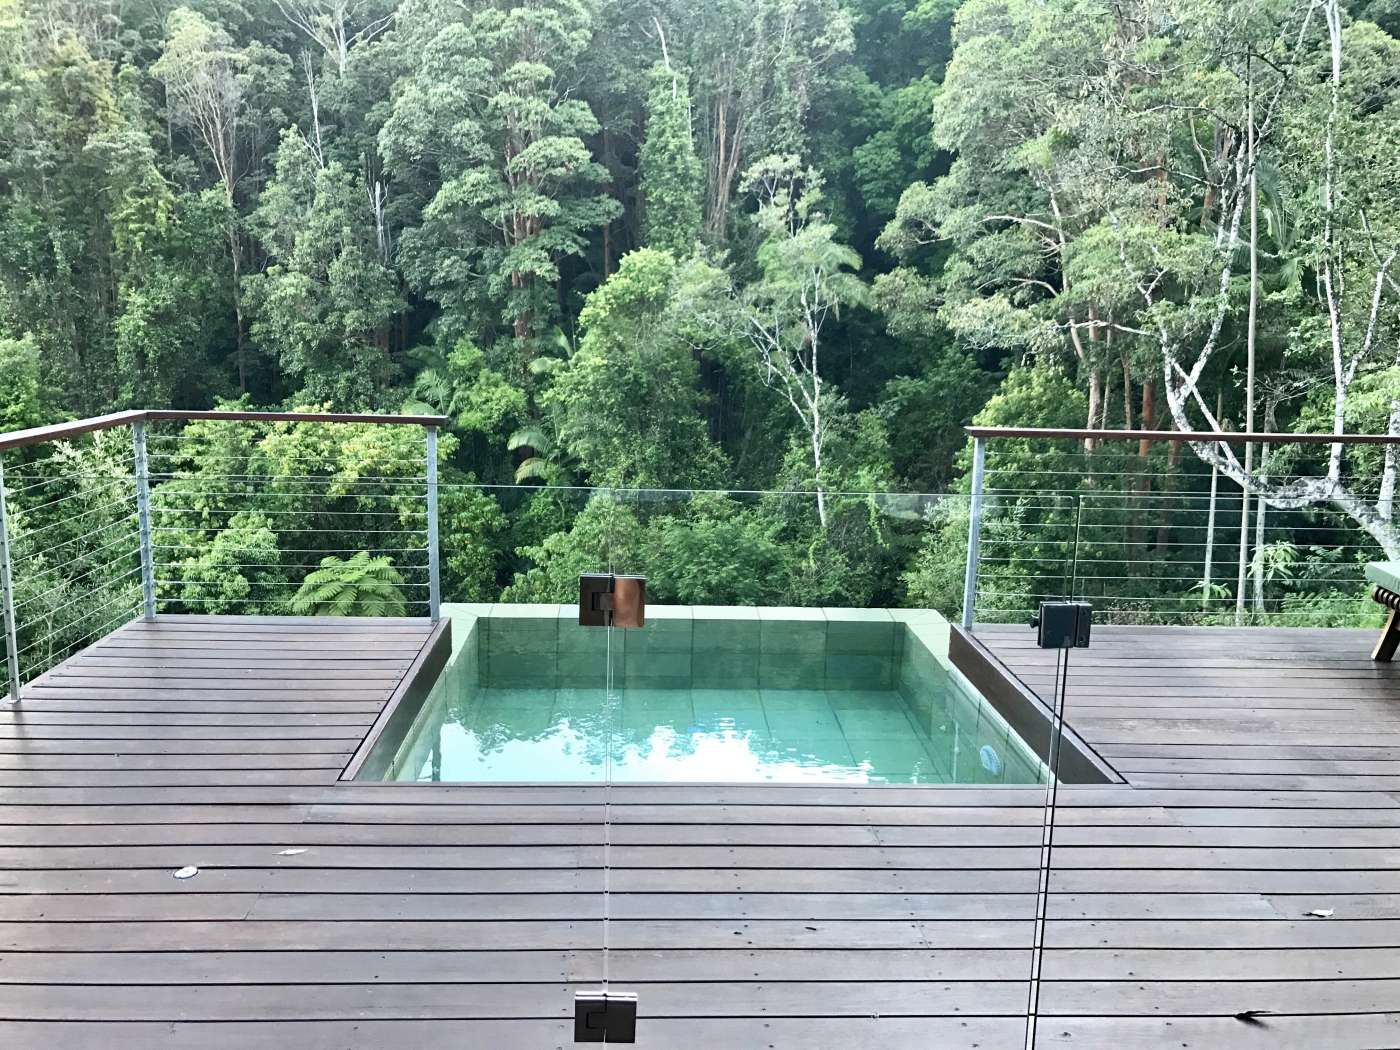 Seven romantic getaways in australia to get away from it all nova 969 for Movable swimming pool floor australia